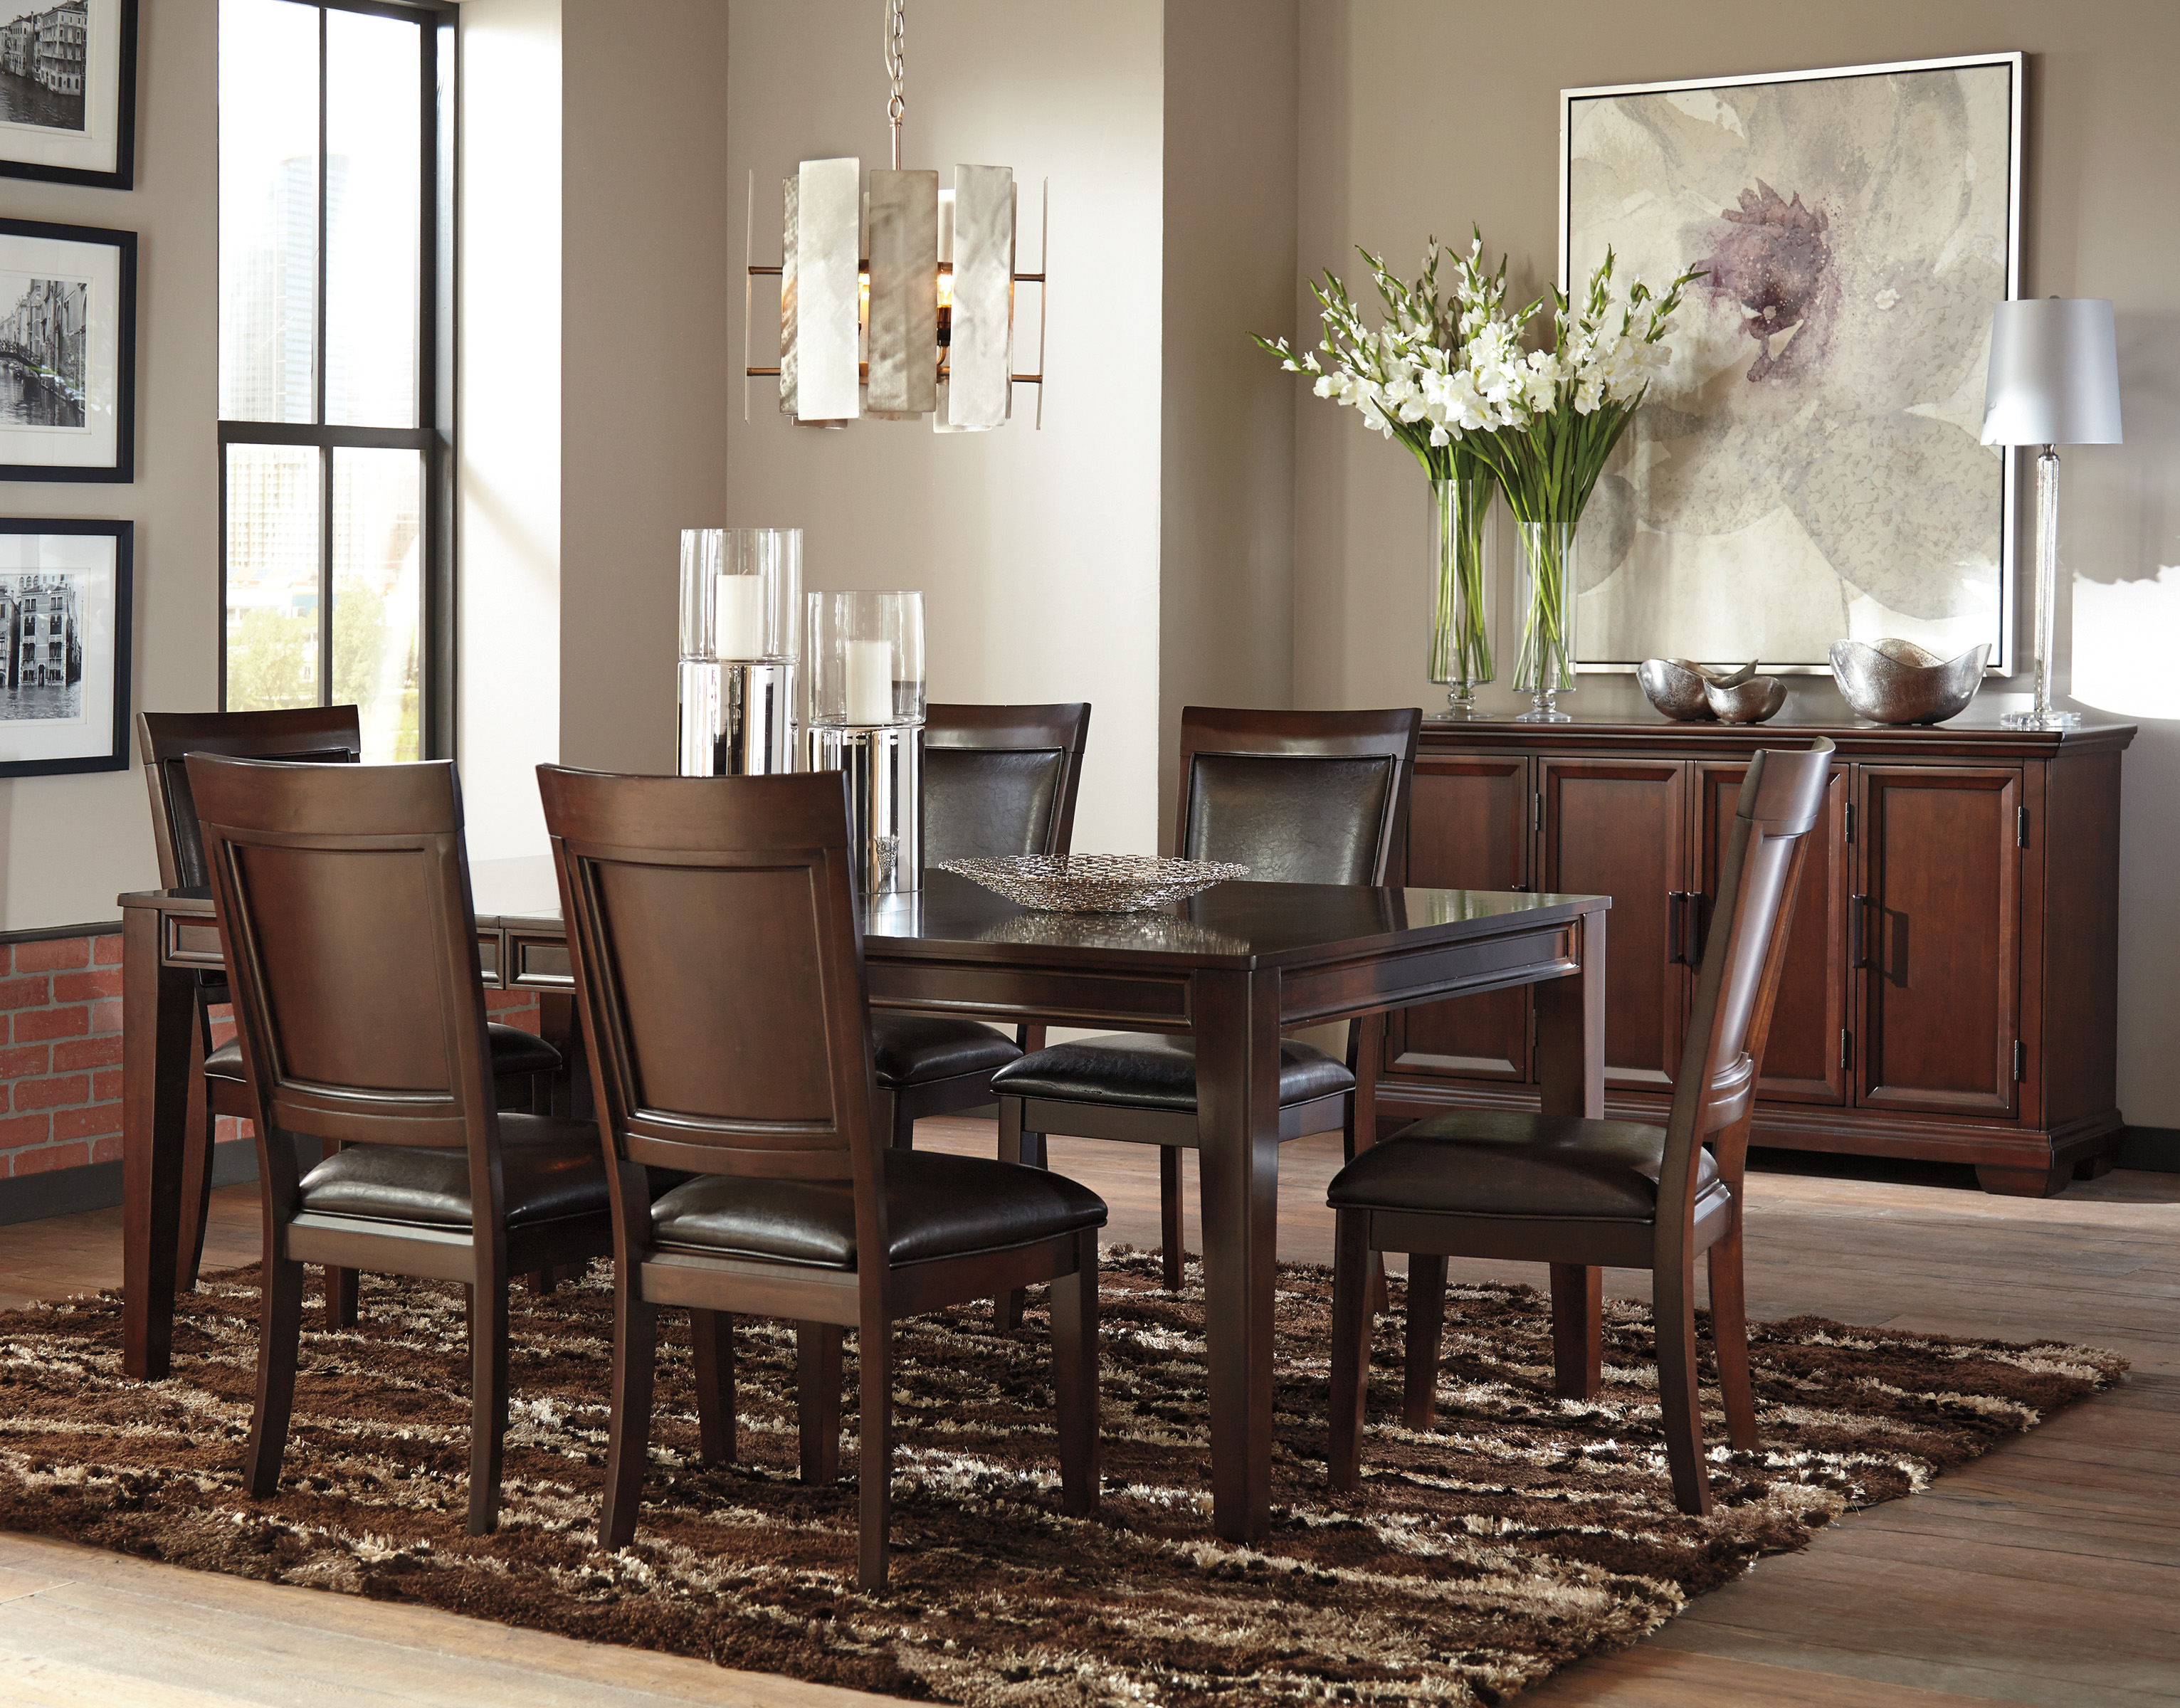 kitchen table with leaf insert classics denver ashley shadyn 7 piece casual dining room set in a warm